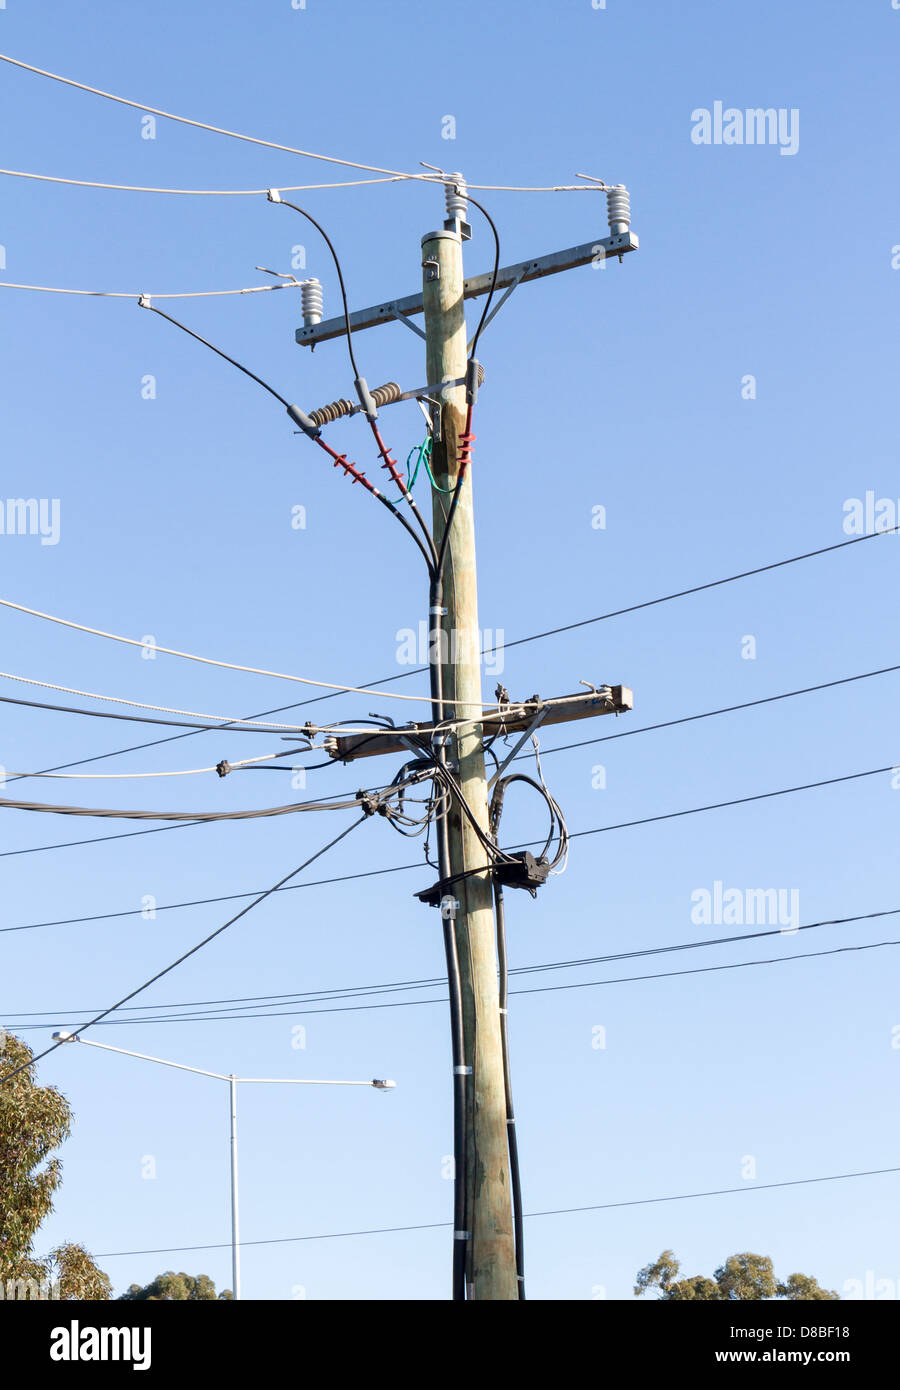 Overhead Electrical Conductors : Three phase overhead electrical distribution poles and